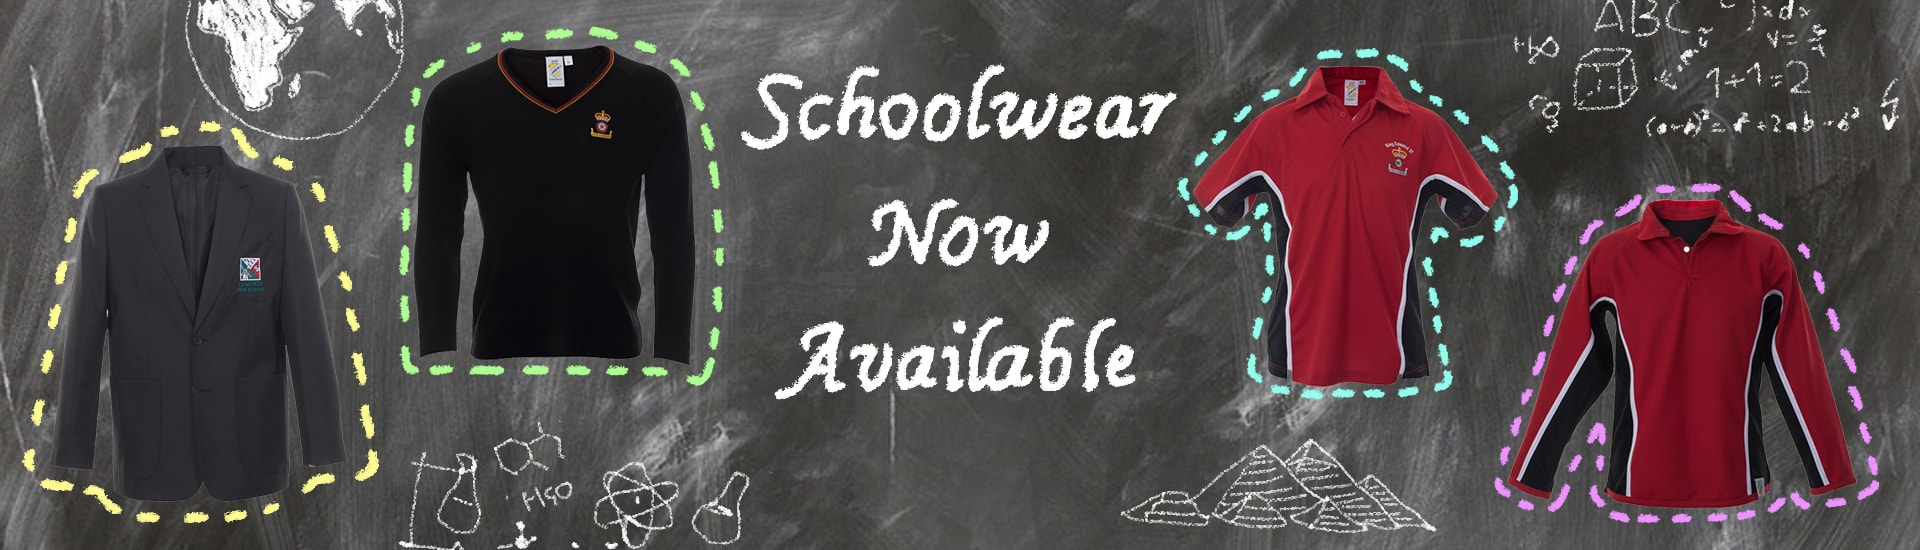 Schoolwear Now Available